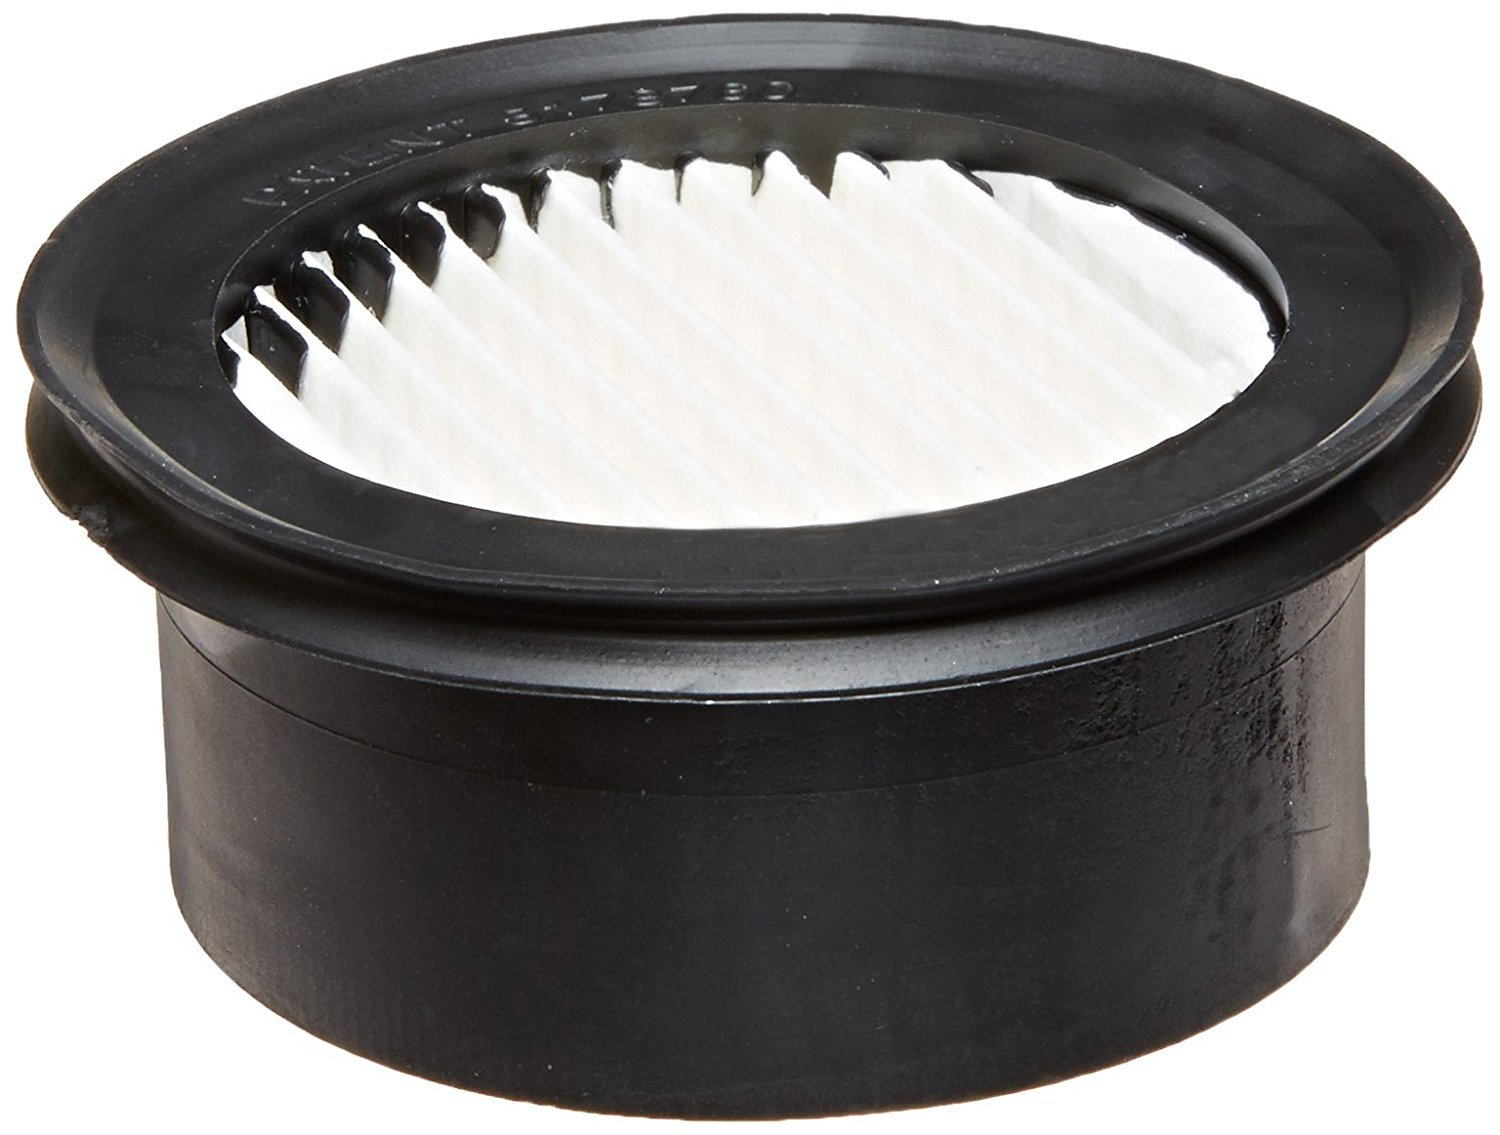 Midwest Control 06 Solberg Hockey Puck Replacement Paper Filter 2 Microns 3 x 1-3//8